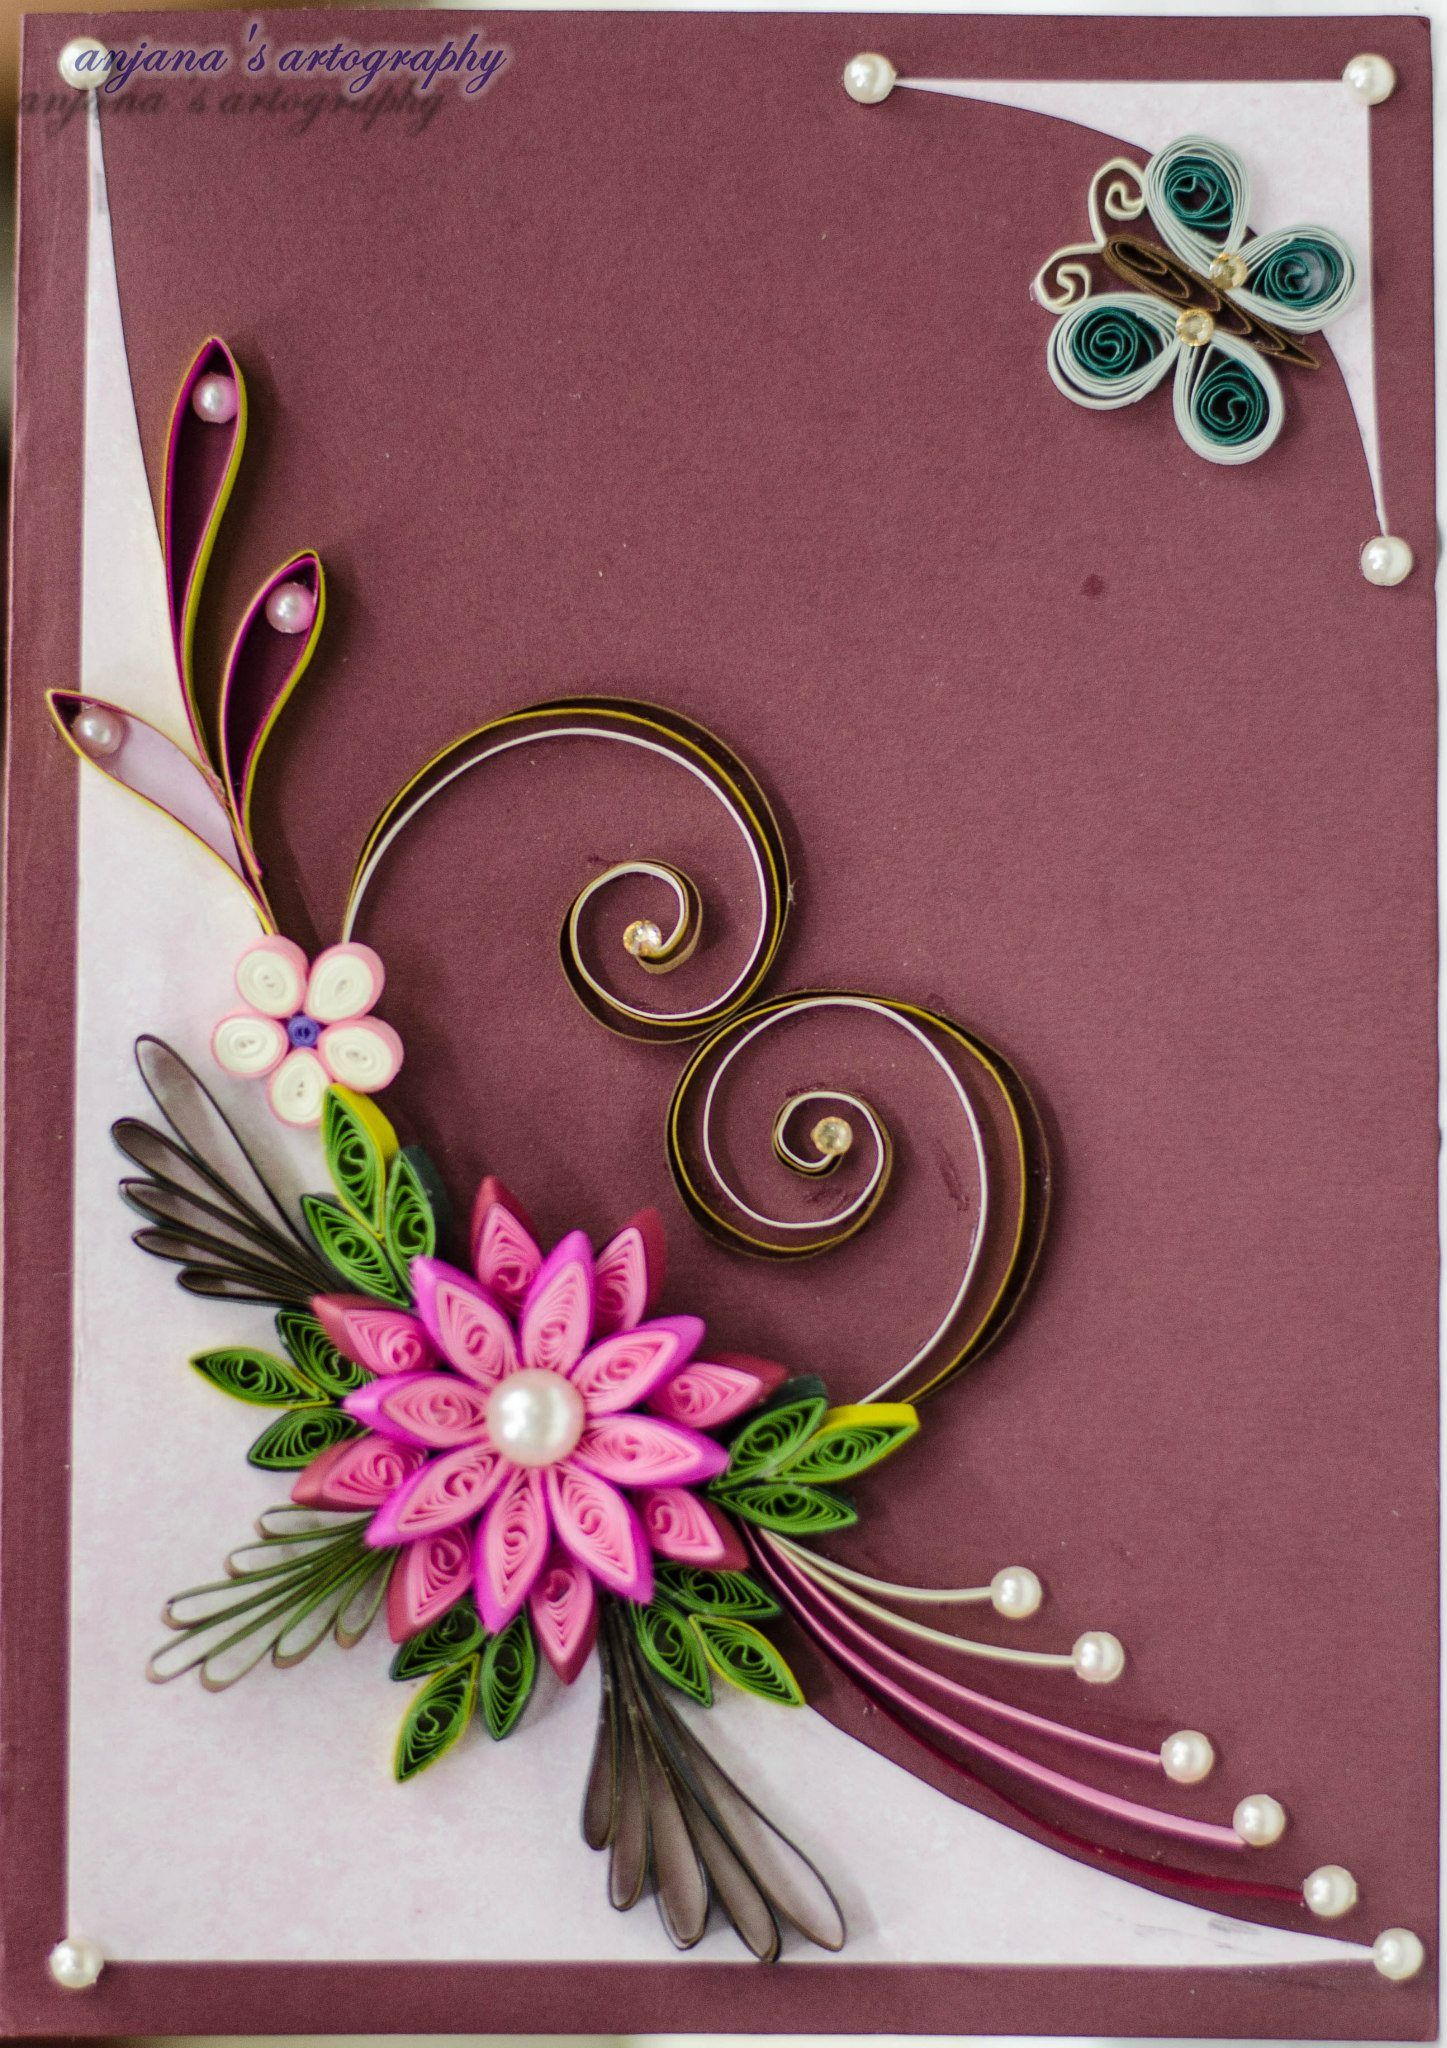 Pin by dana pivo kov on quilling obr zky r me ky for Paper quilling designs